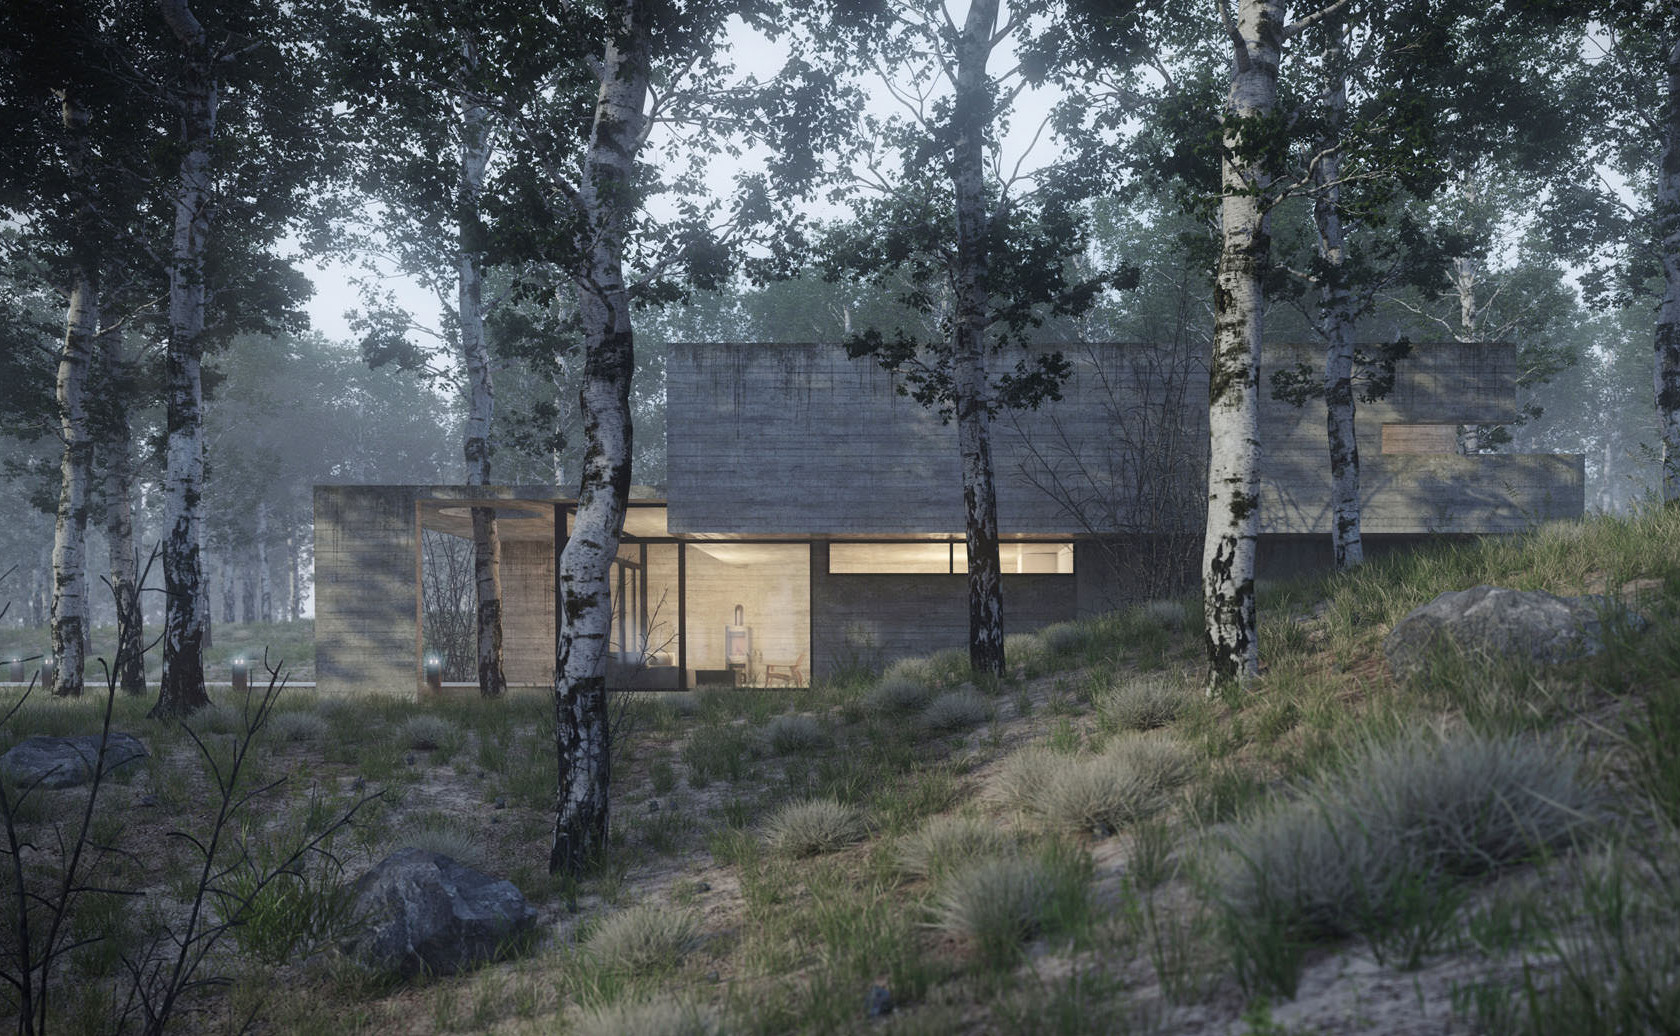 30-house-in-the-forest-view-1-juan-k-torres